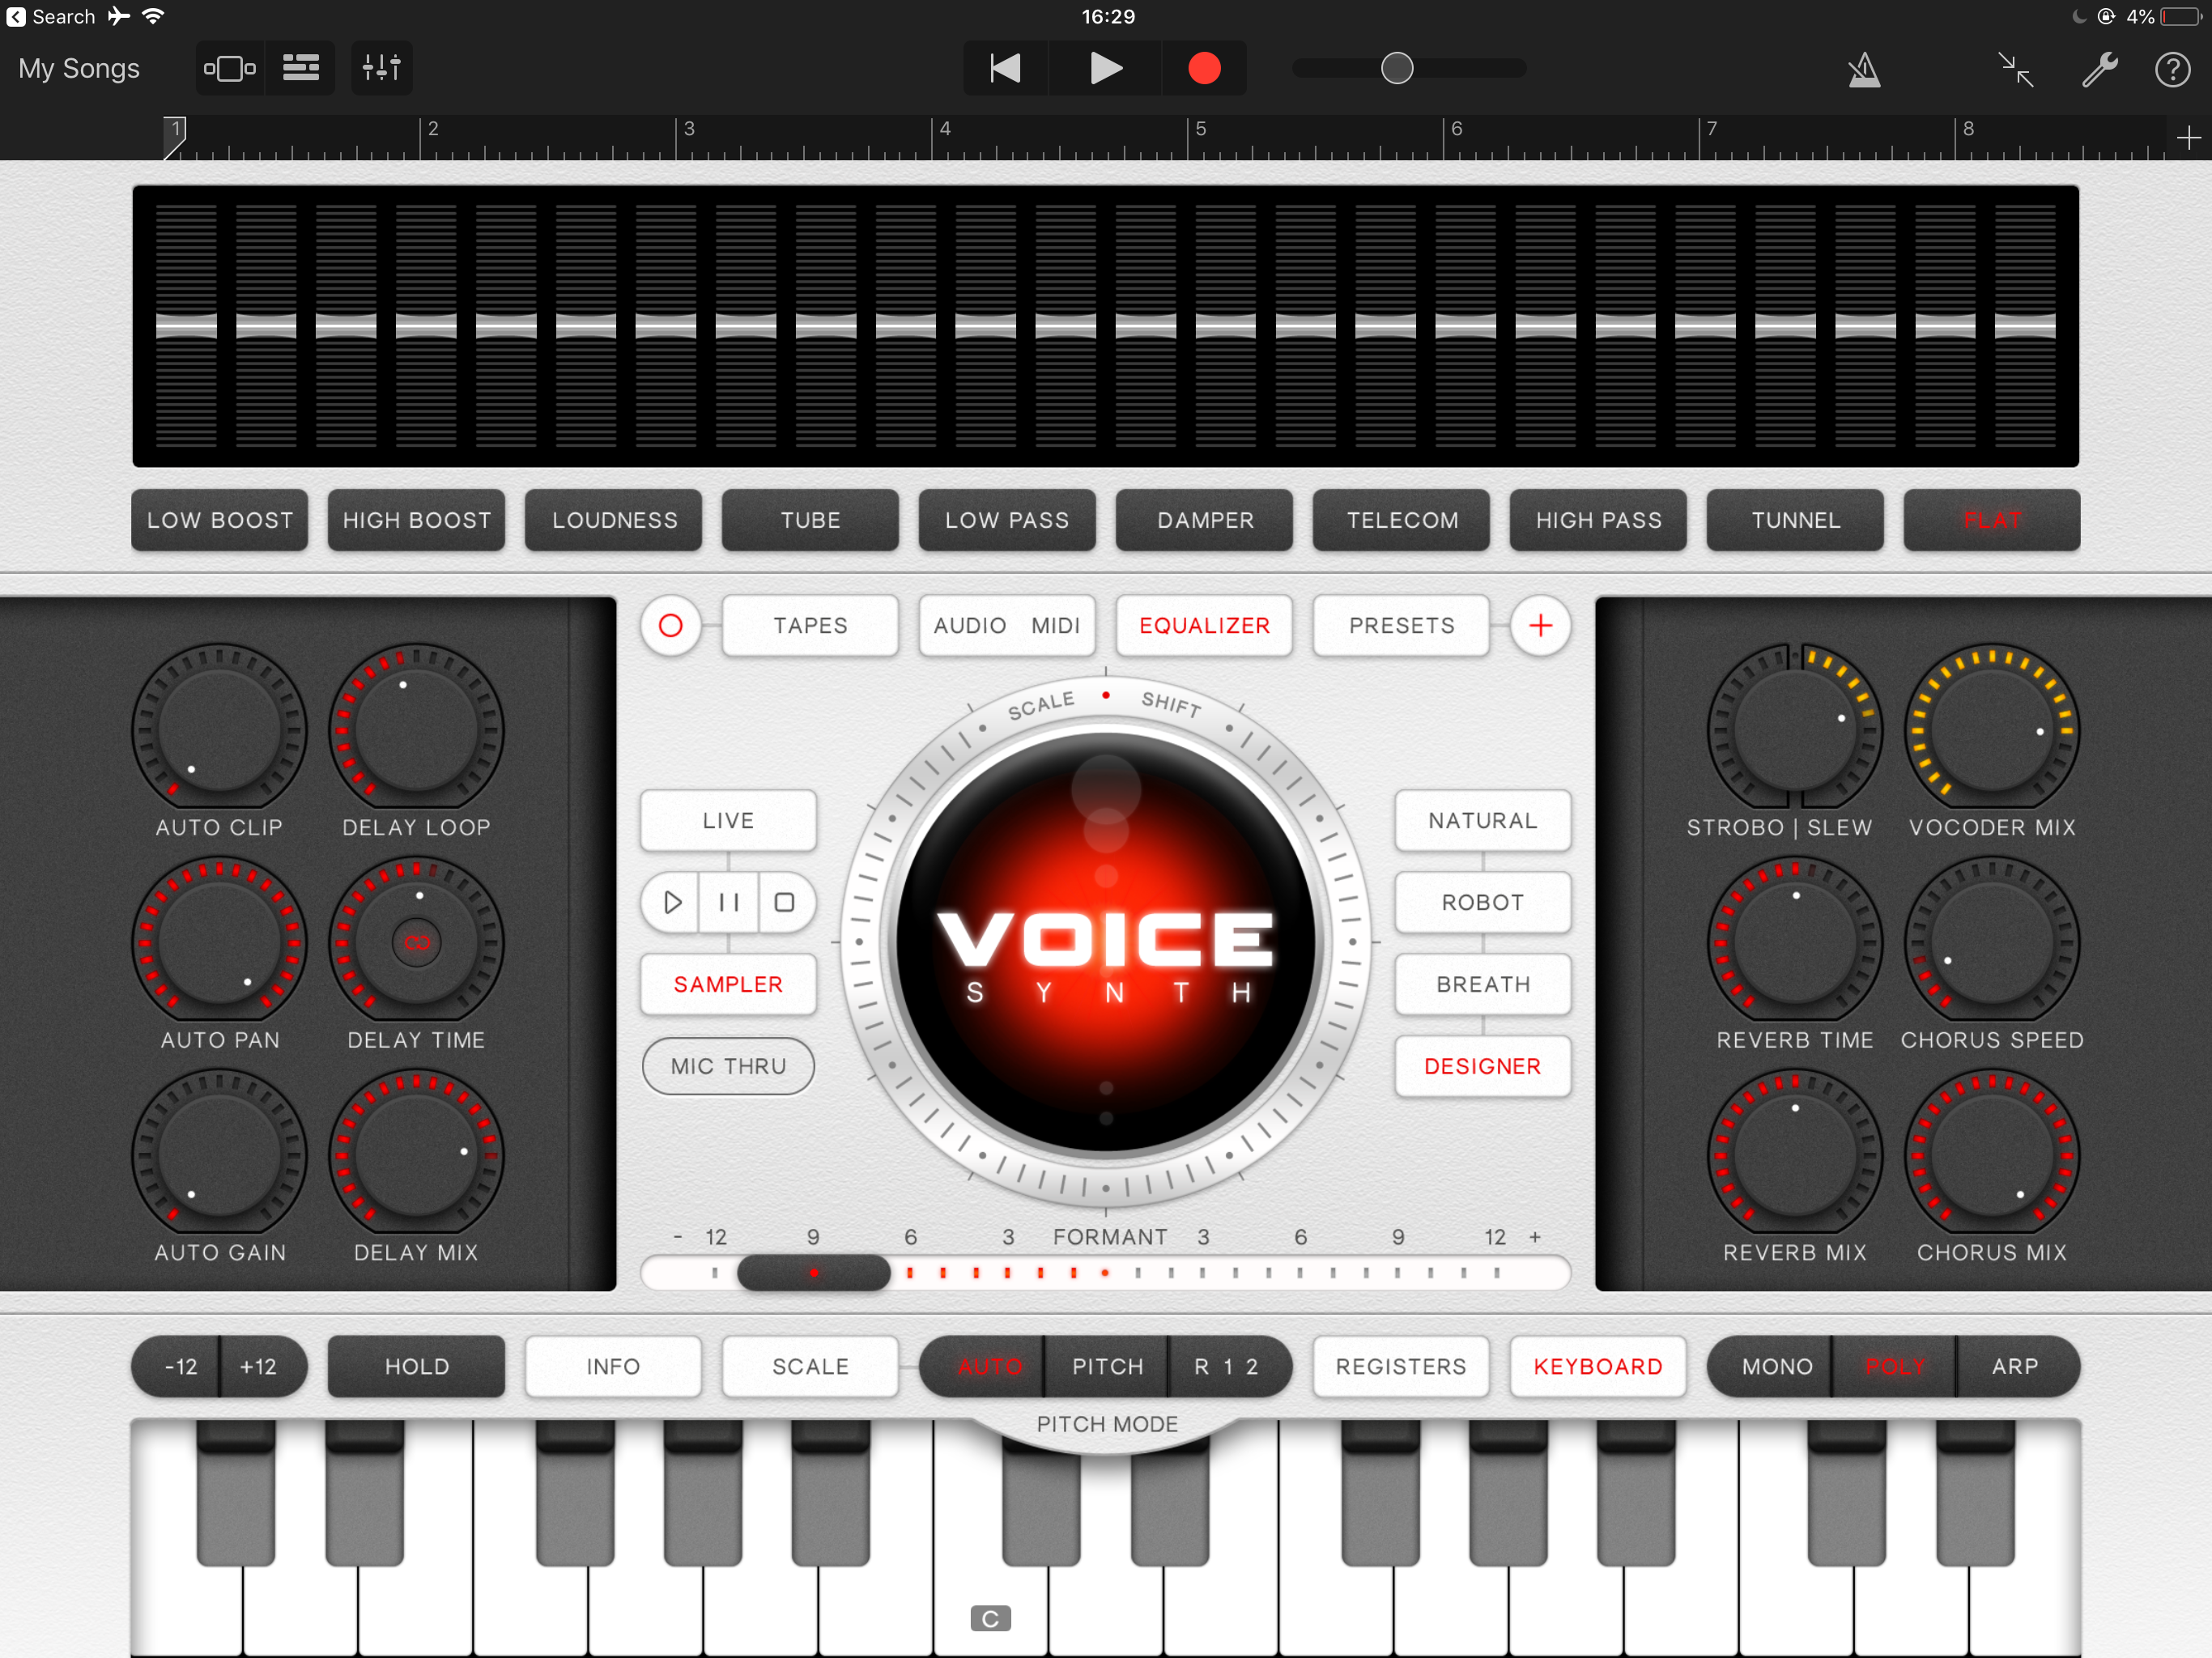 Voice Synth AUv3 - Page 2 — Audiobus Forum